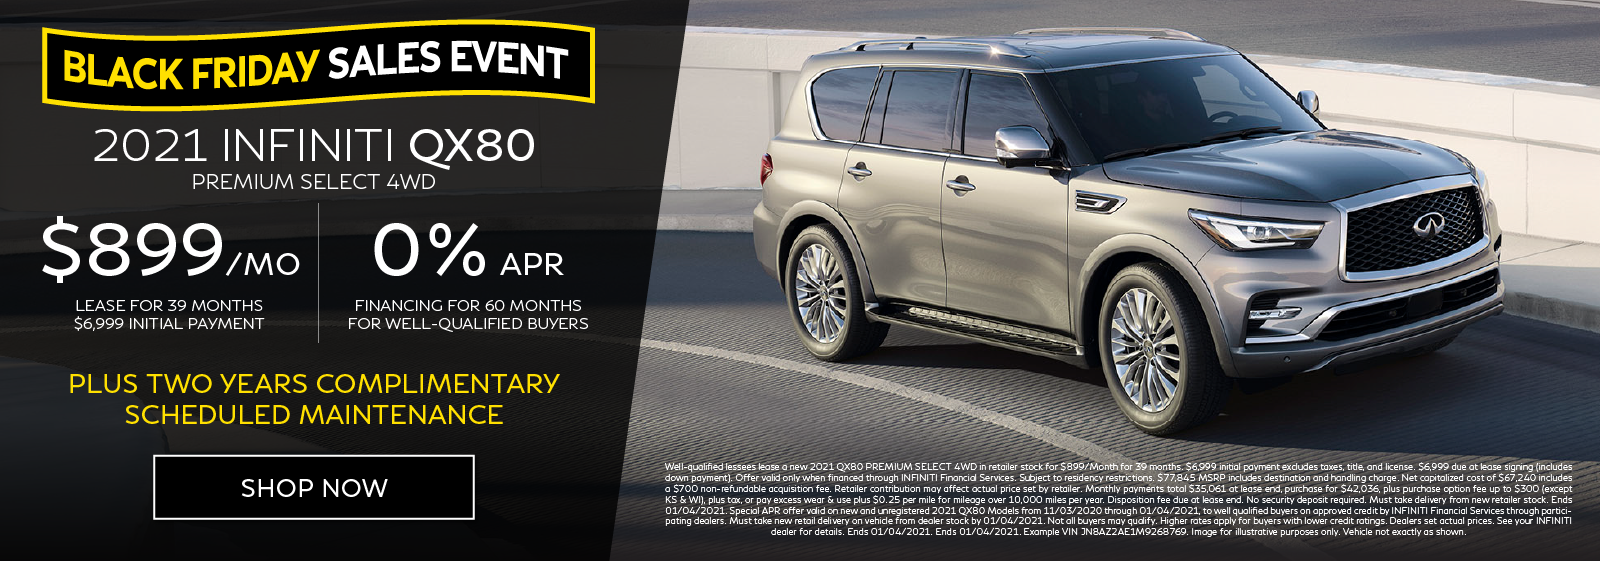 Well-qualified customers can lease a new 2020 QX80 PREMIUM SELECT 4WD for $899 per month for 39 months OR get 0% APR financing for 60 months. Click to shop now.